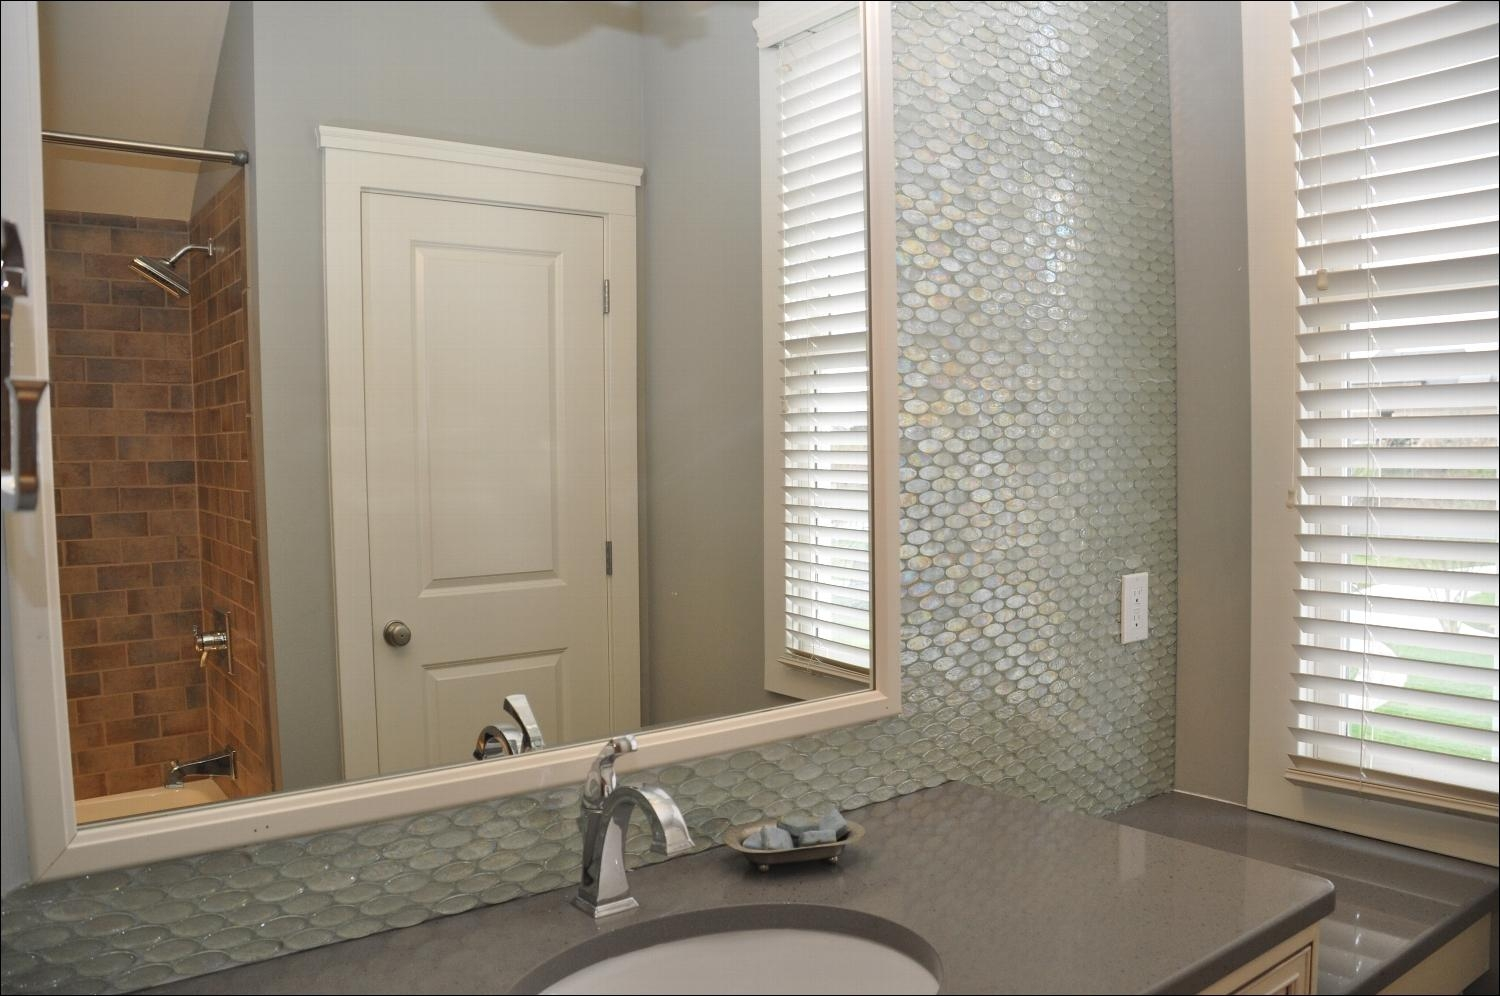 Round Bathroom Wall Mirrors — All Home Design Solutions : Applying In Fancy Bathroom Wall Mirrors (Image 14 of 20)